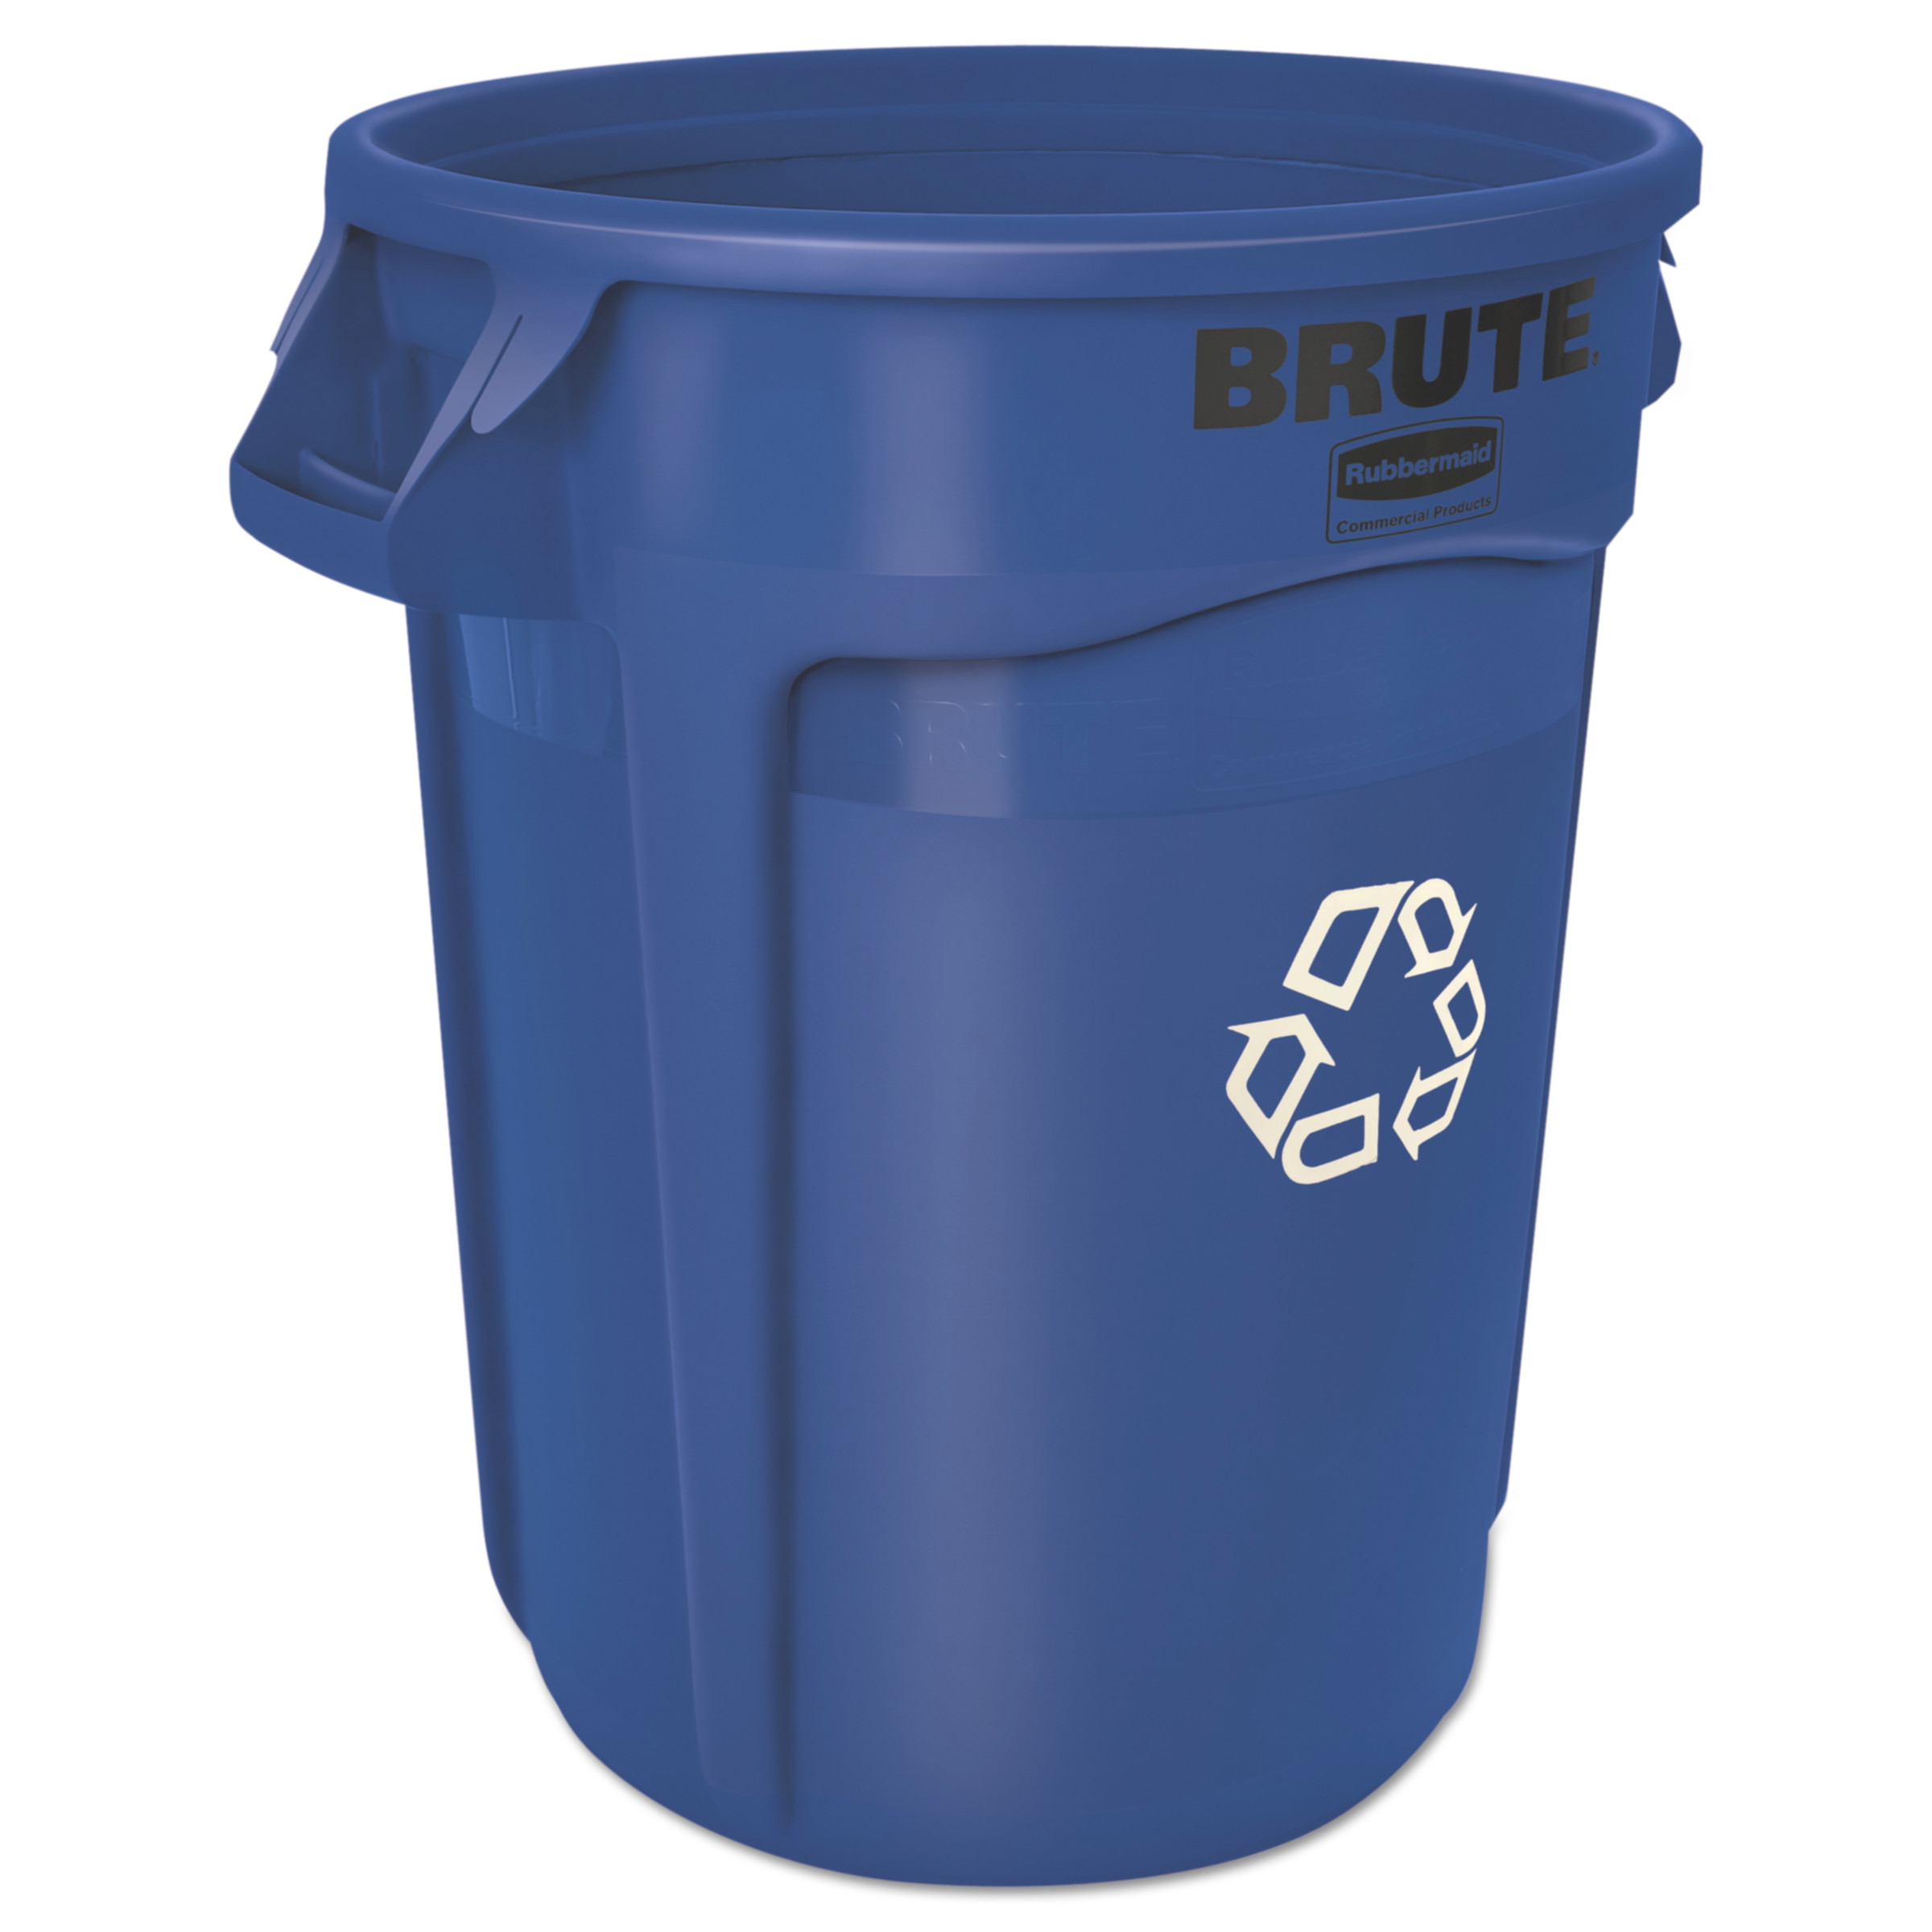 Rubbermaid Commercial Brute Recycling Container, Round, 32 gal, Blue